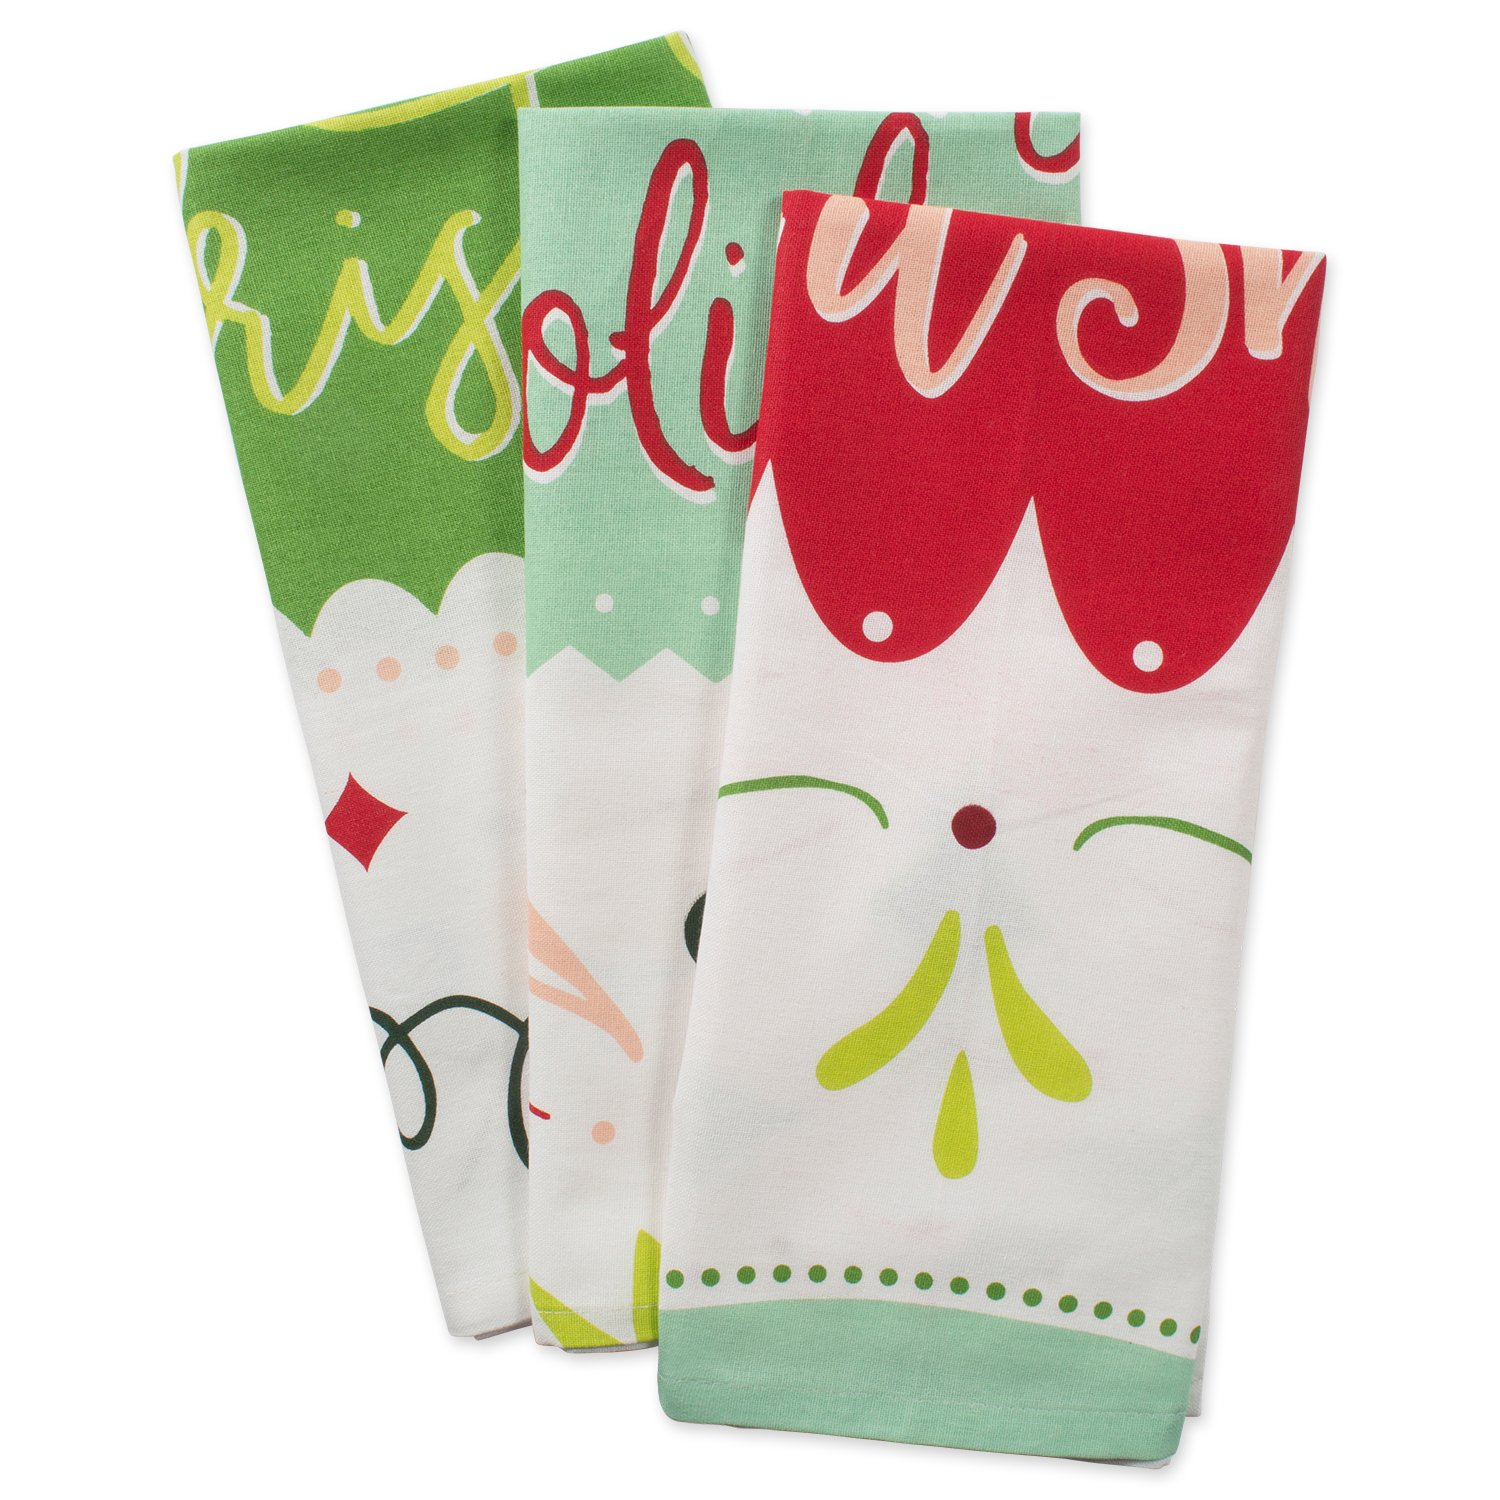 DII Cotton Christmas Holiday Printed Dish Towels, 18x28